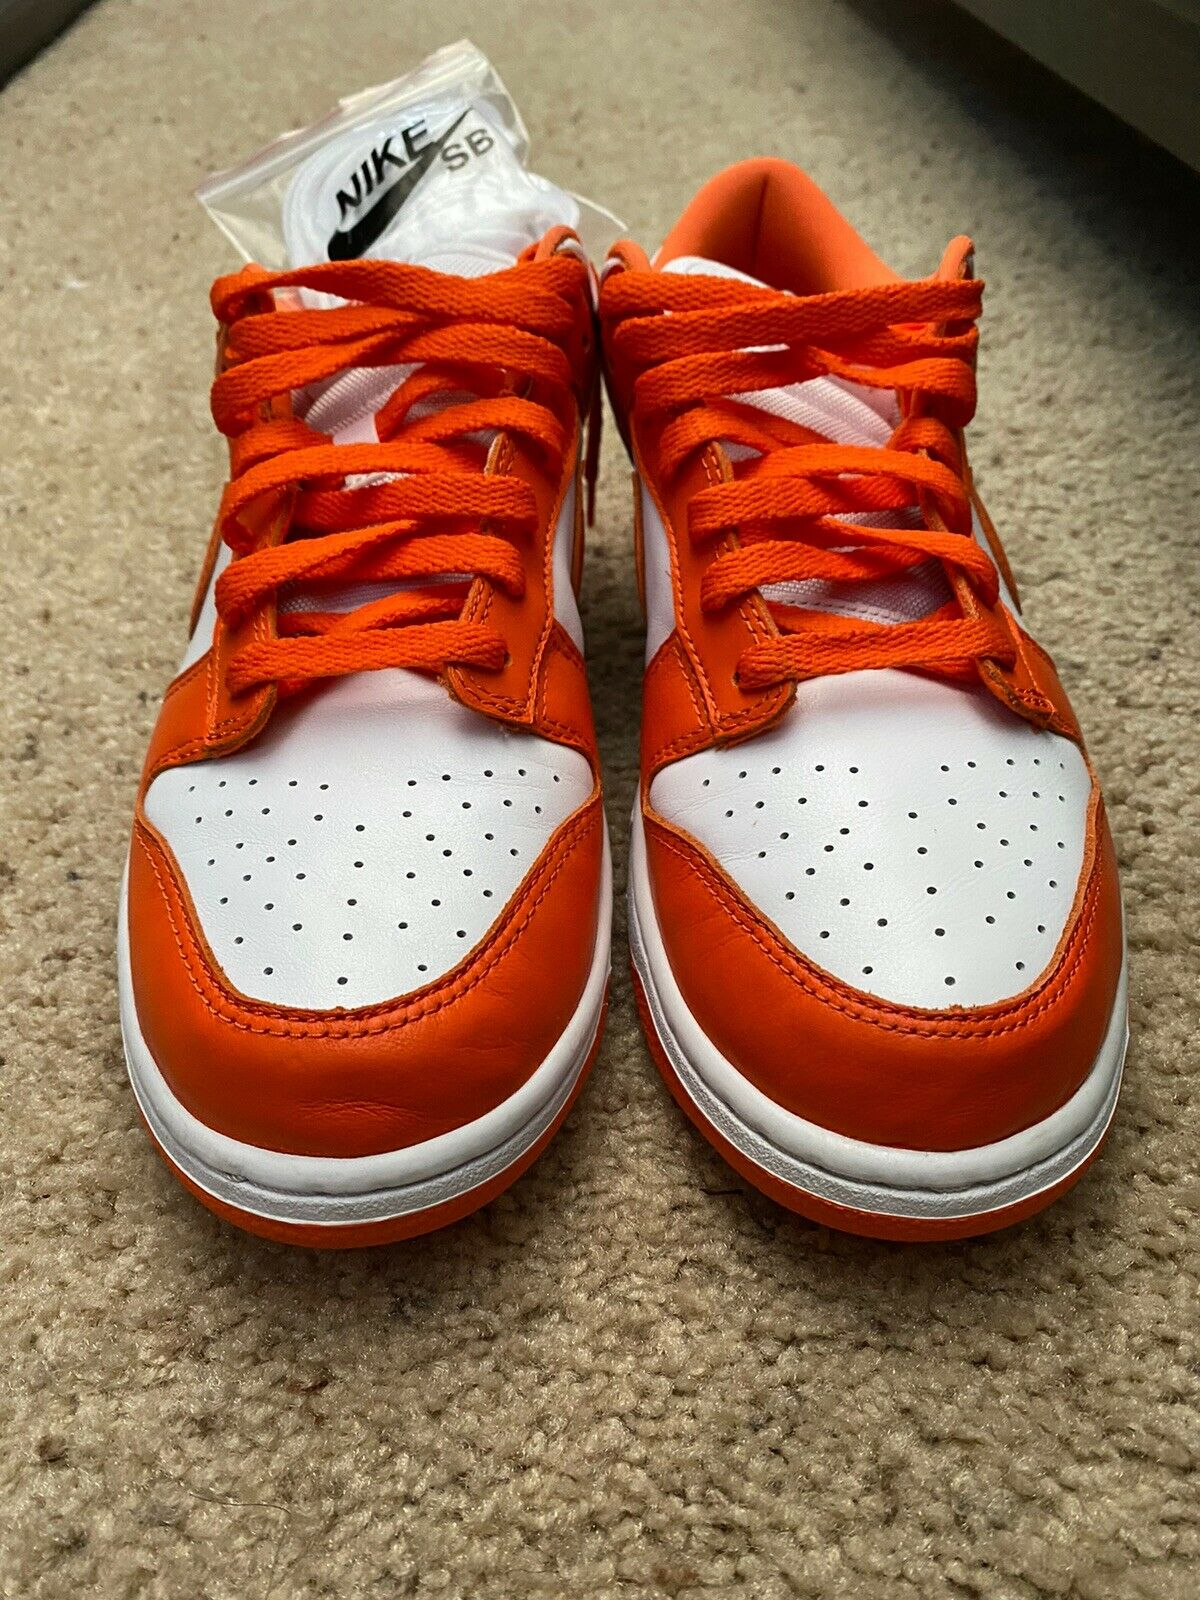 Nike Dunk Low SP Syracuse 2020